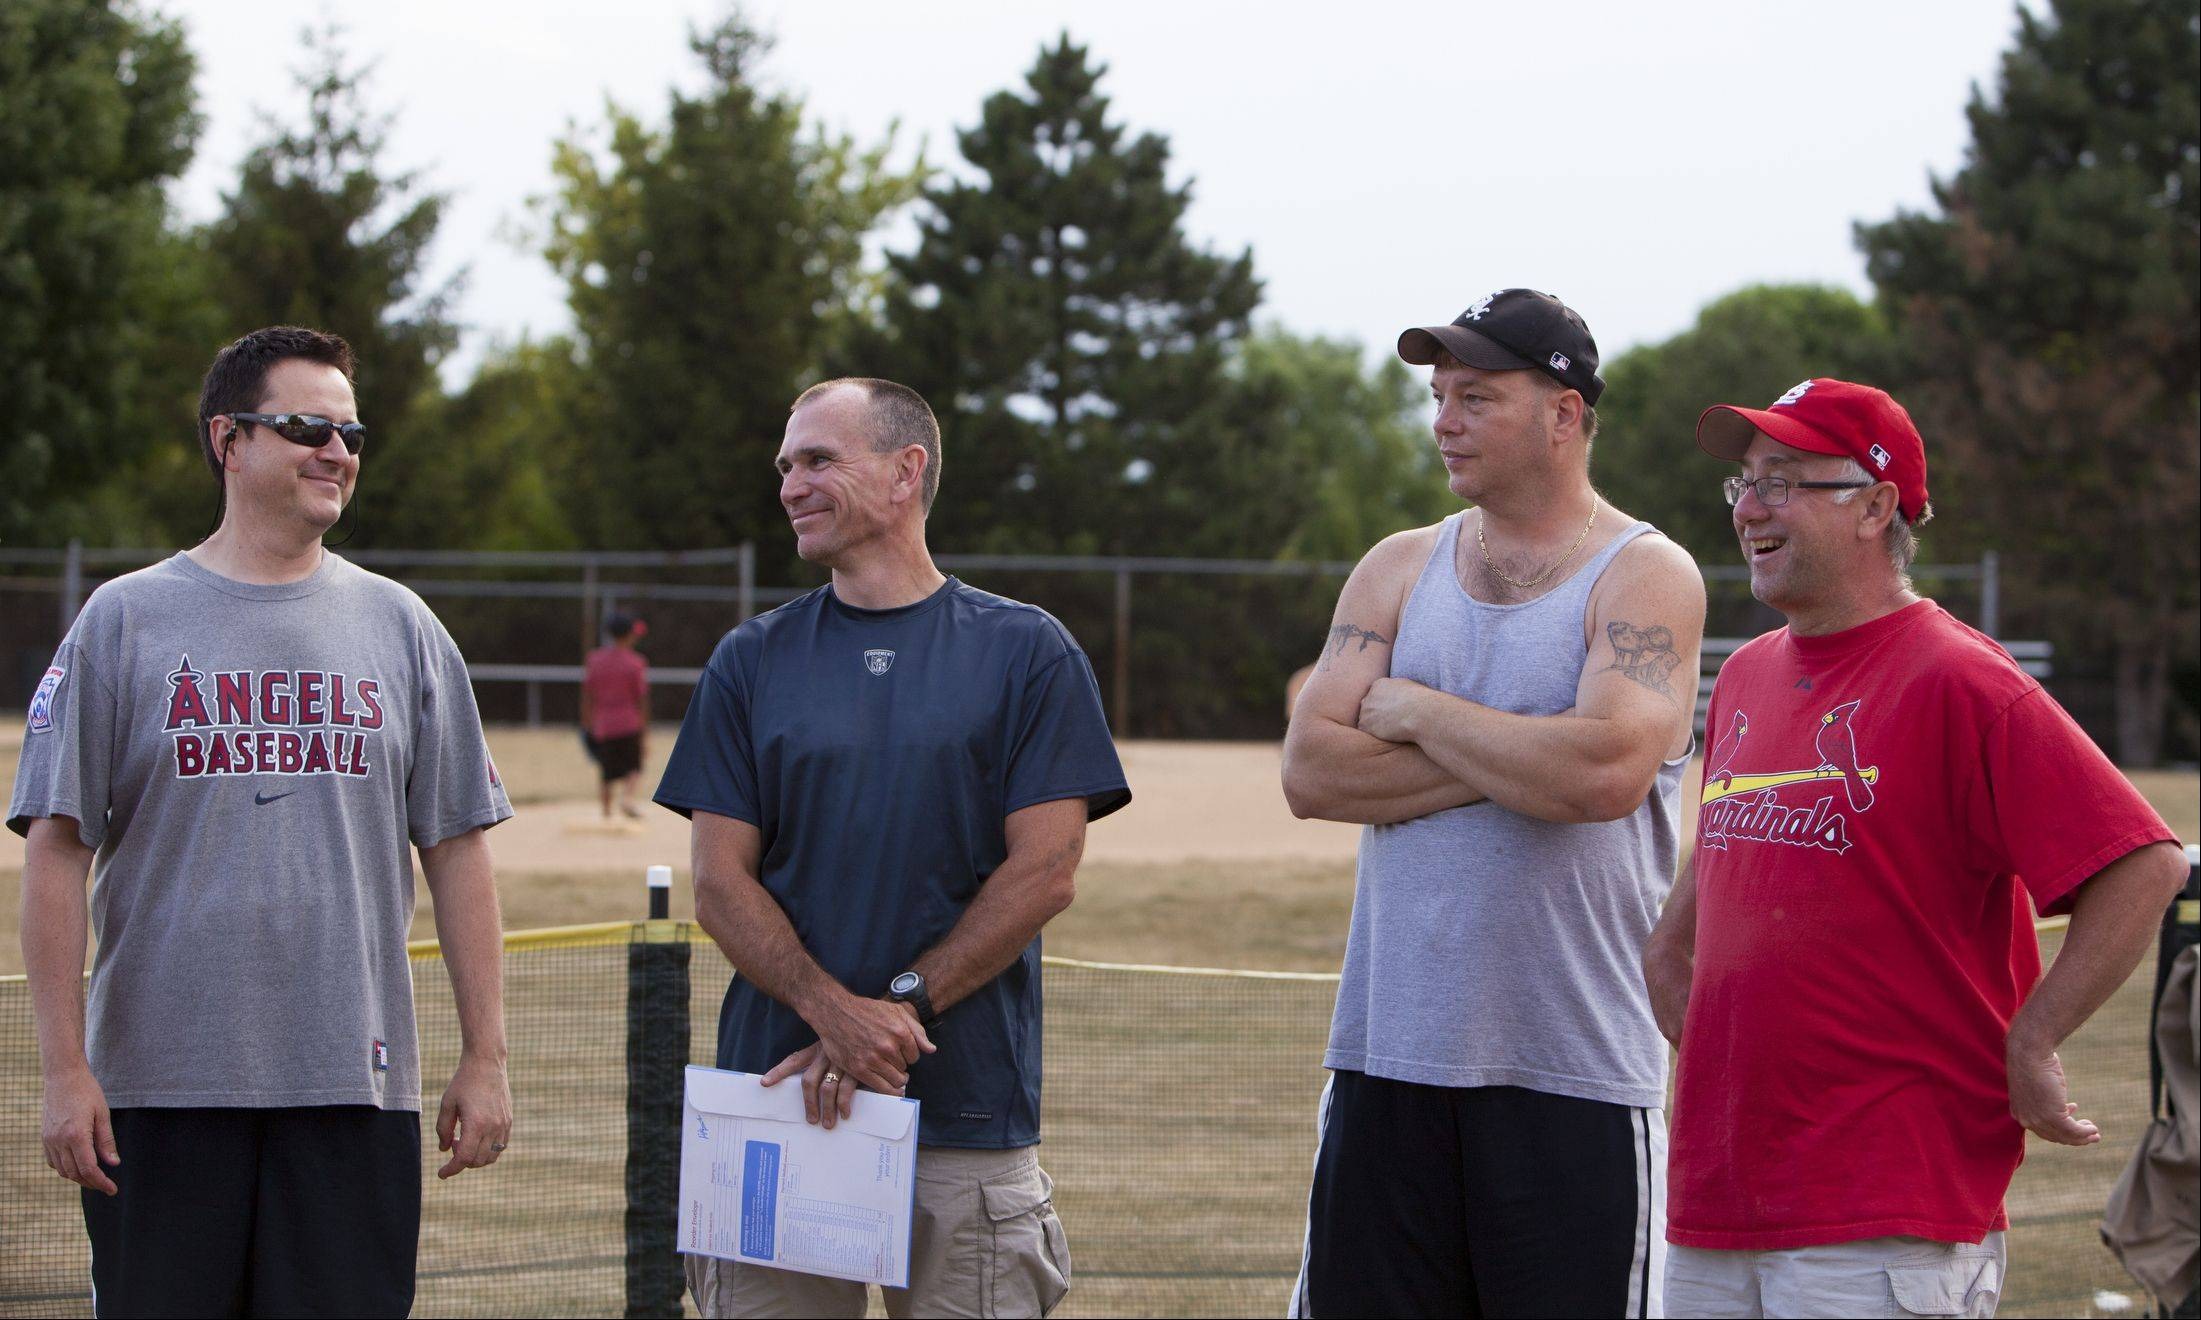 Bartlett Little League Challenger coaches, from left, Larry Wegner, of the Angels and league member for eight years, Mike Miles, of the Cubs and league member for 10 years, Bob Kennedy, of the Sox and league member for four years, and Larry Lavoie, of the Cardinals and league member for six years, are recognized for their hard work.